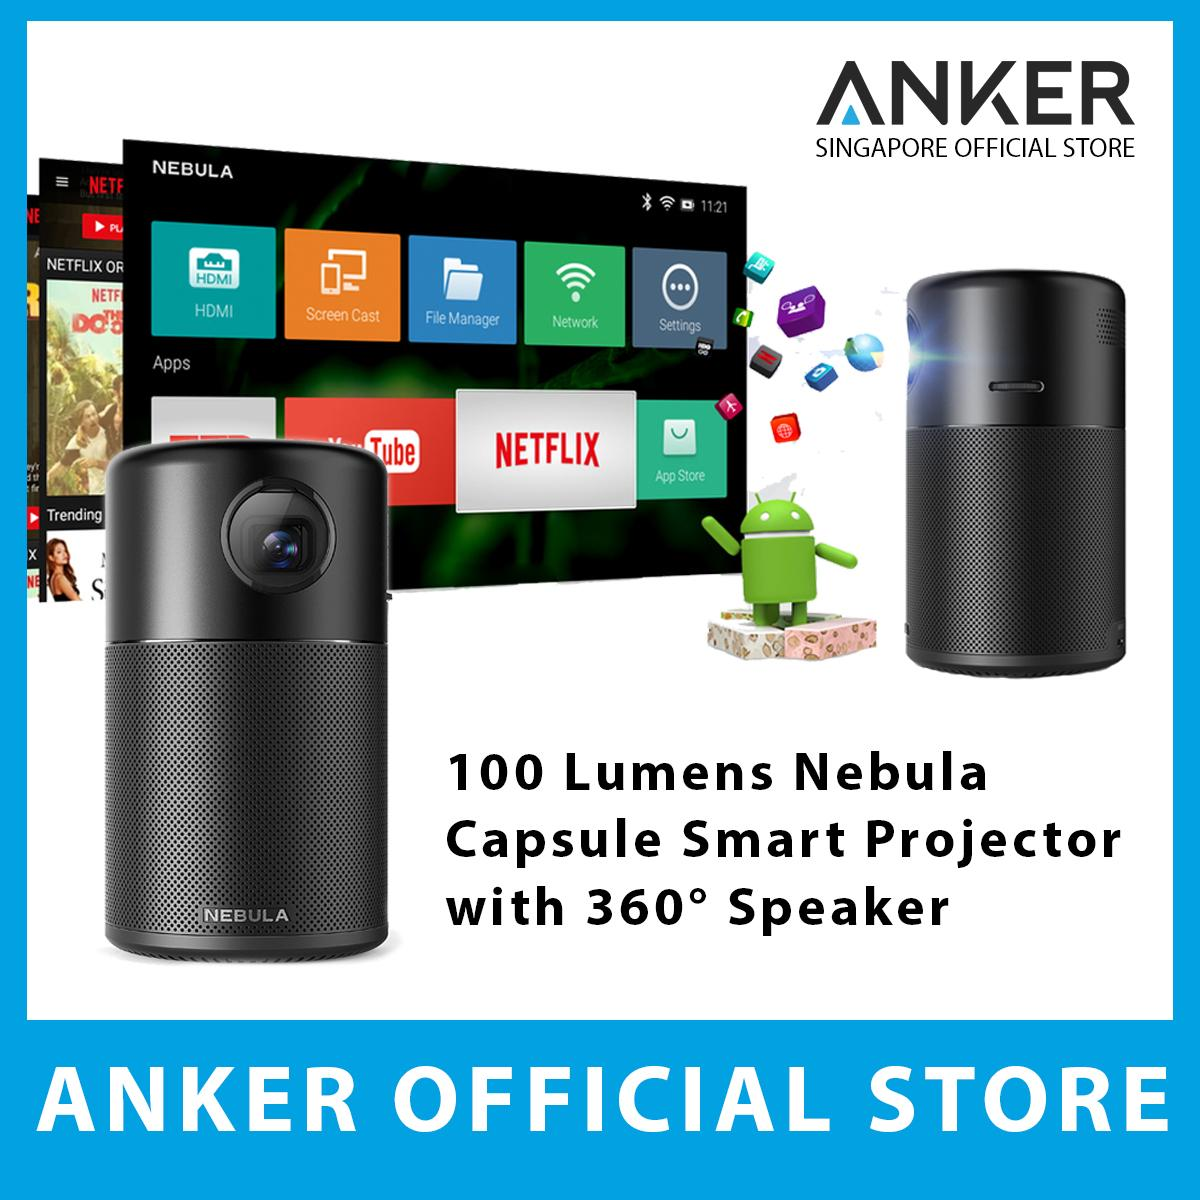 Anker 100 Lumens Nebula Capsule Portable Smart Projector With 360° Speaker Review